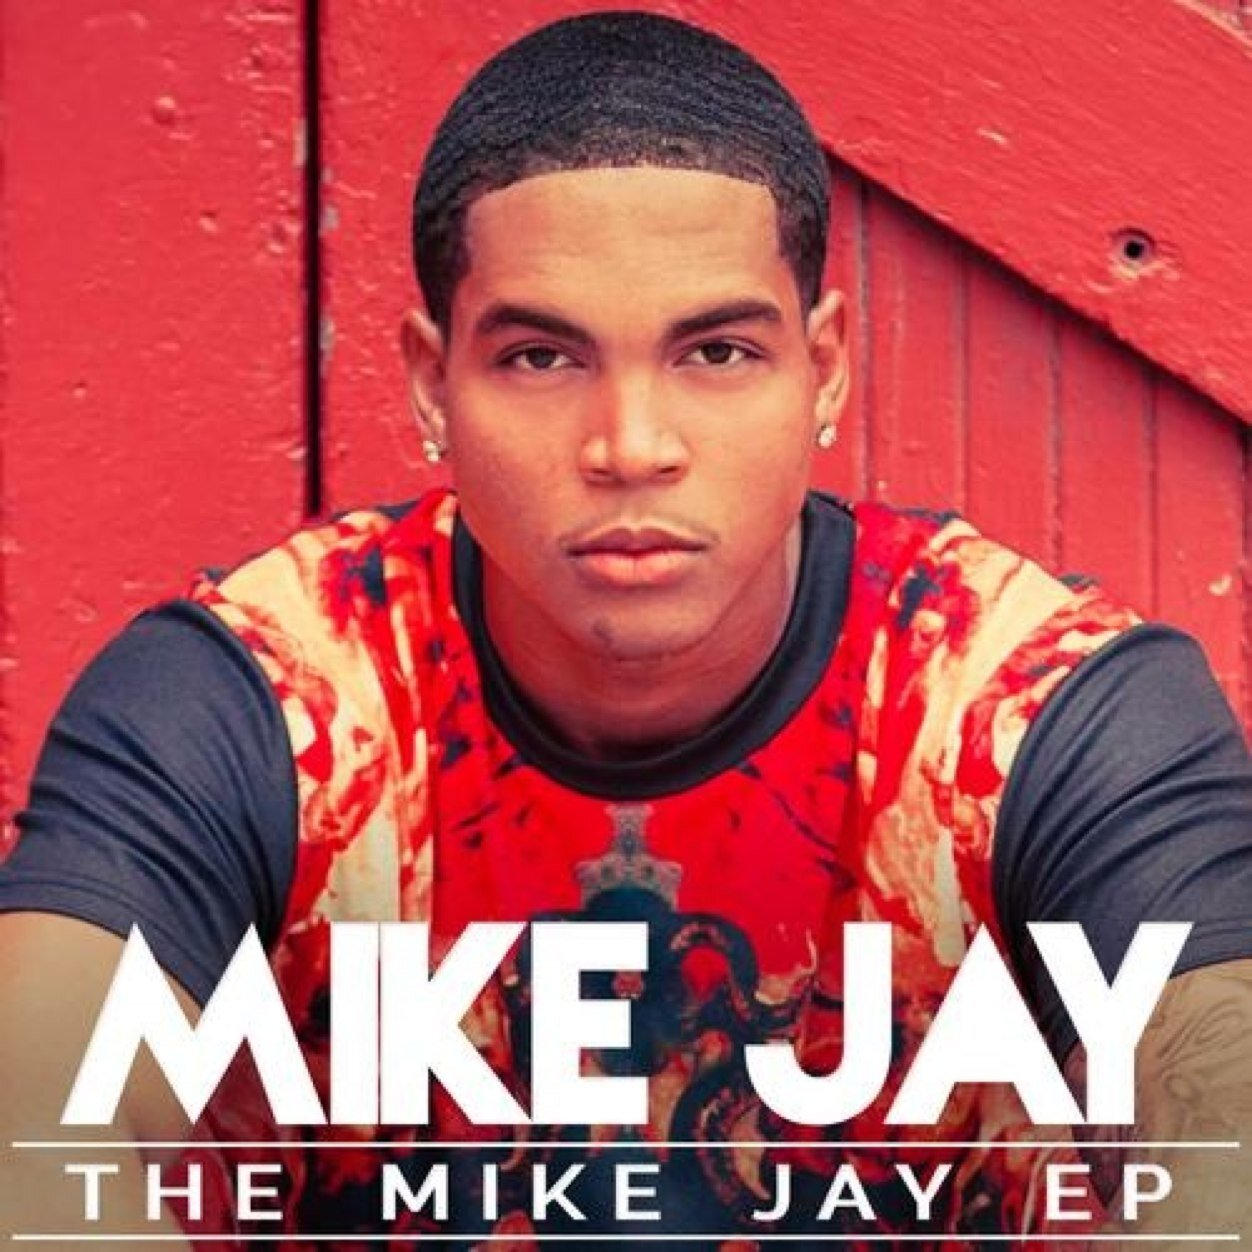 who-is-mike-jay-mike-jay-the-mike-jay-ep